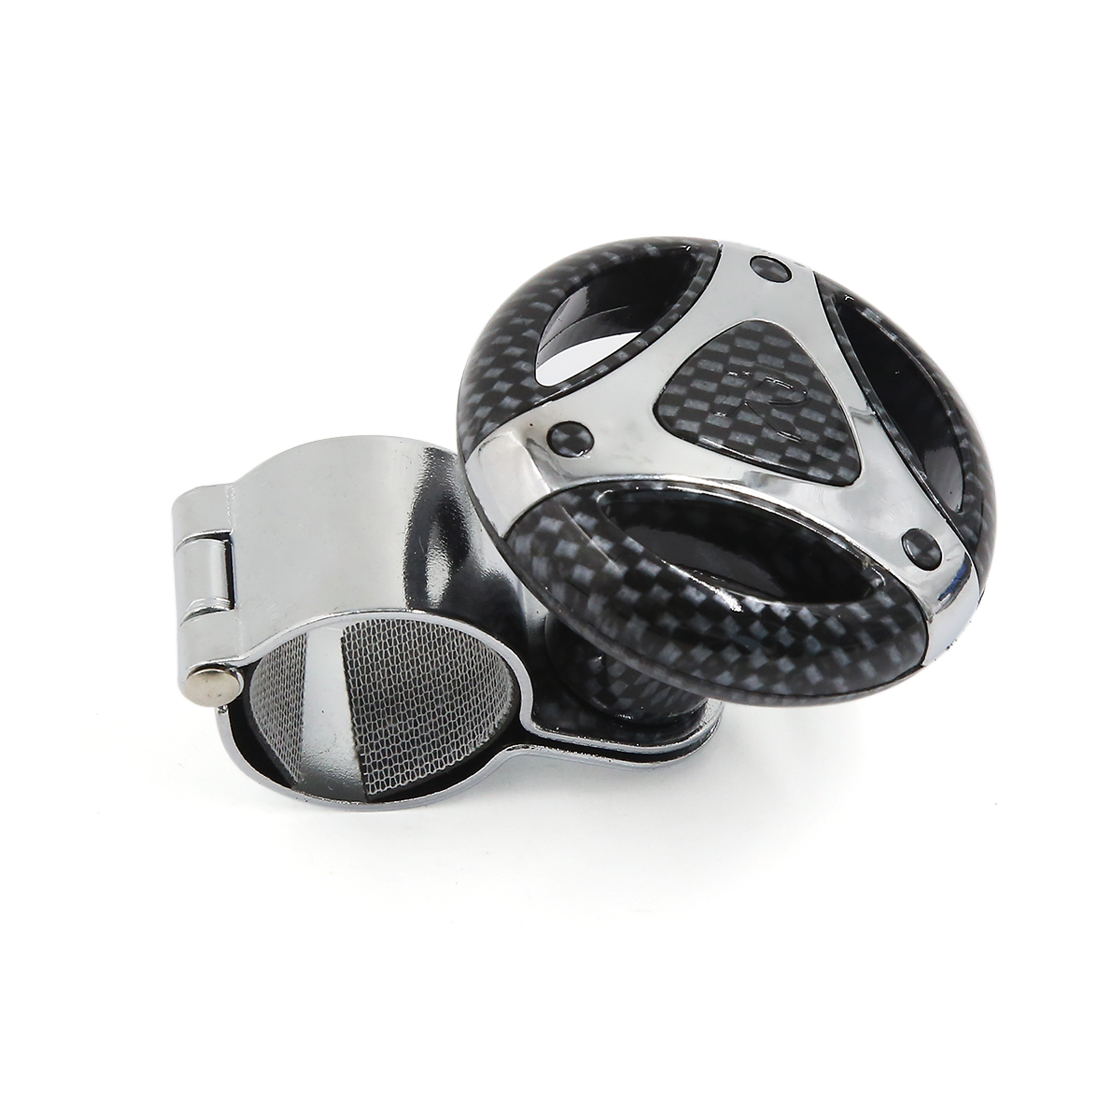 Hollow Style Carbon Fiber Printed Car Power Aid Ball Steering Wheel Knob Booster